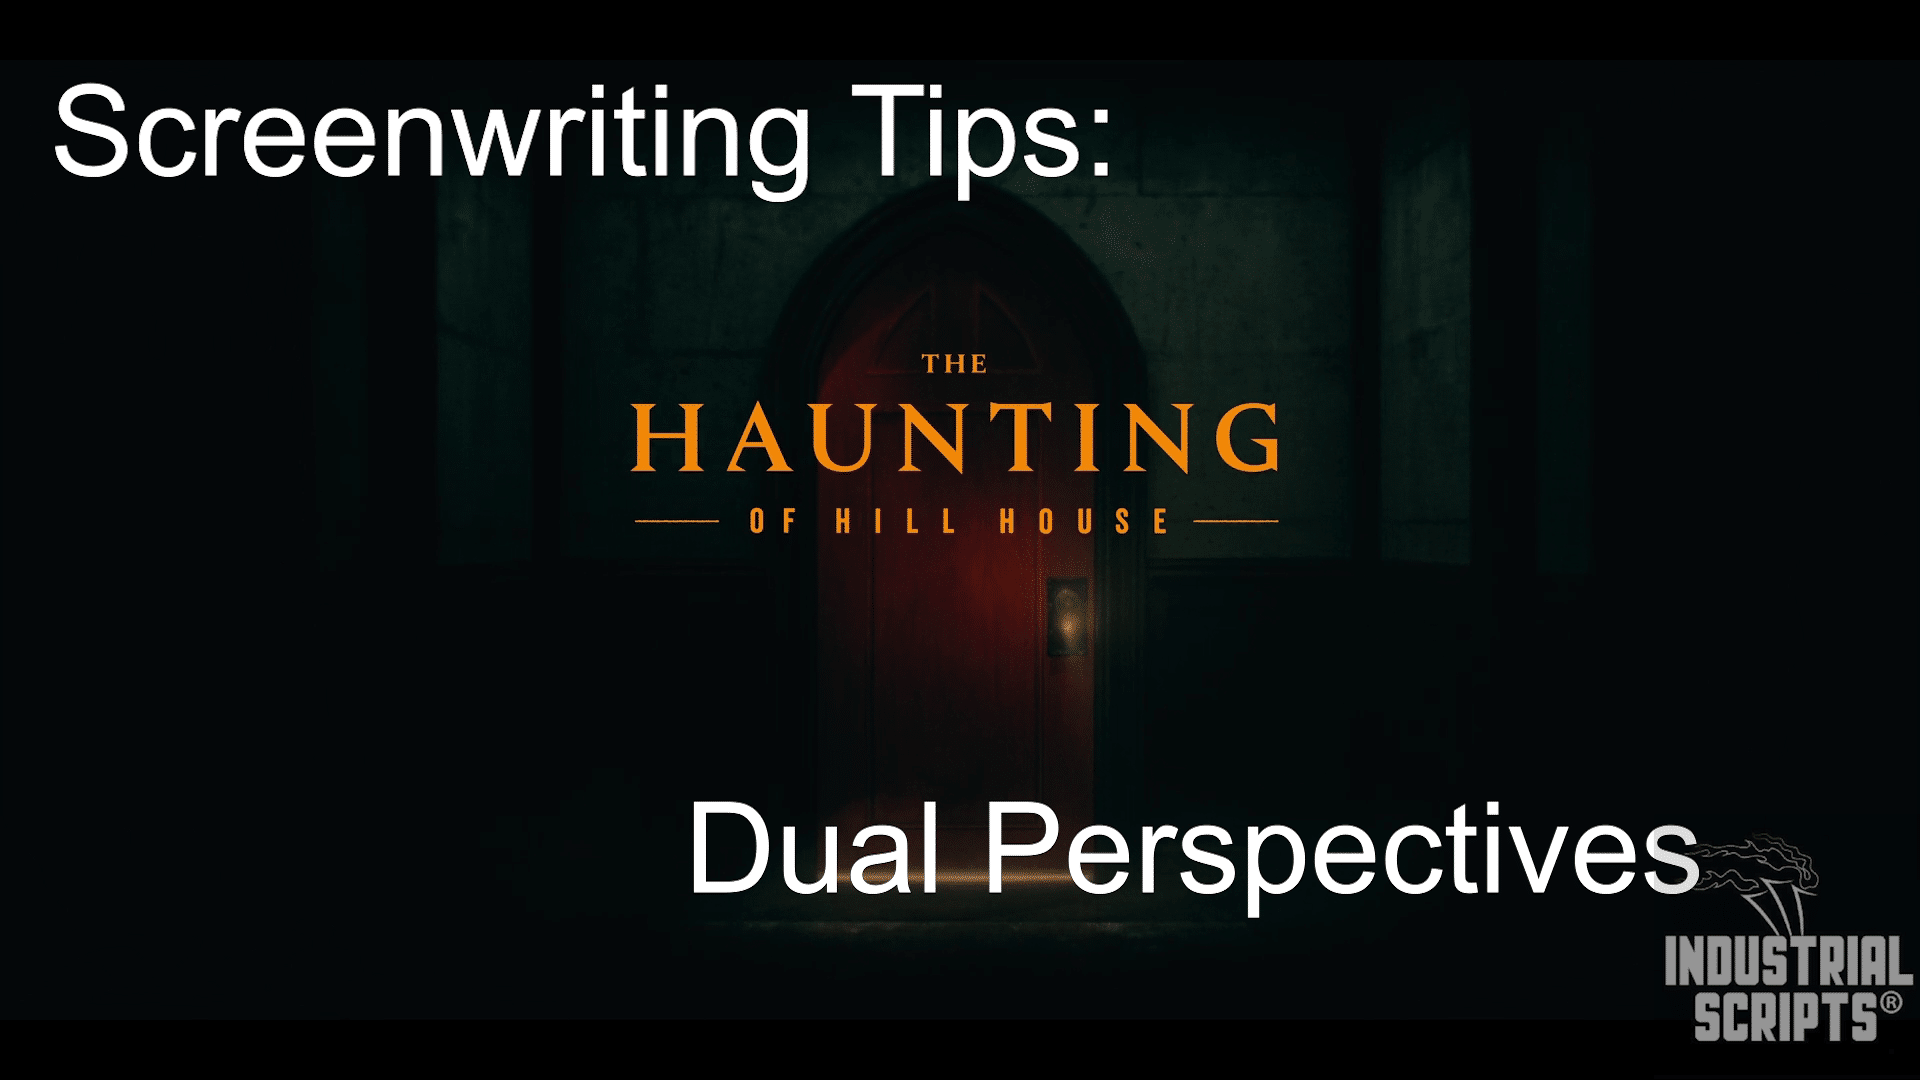 Haunting of Hill House - Dual Perspectives